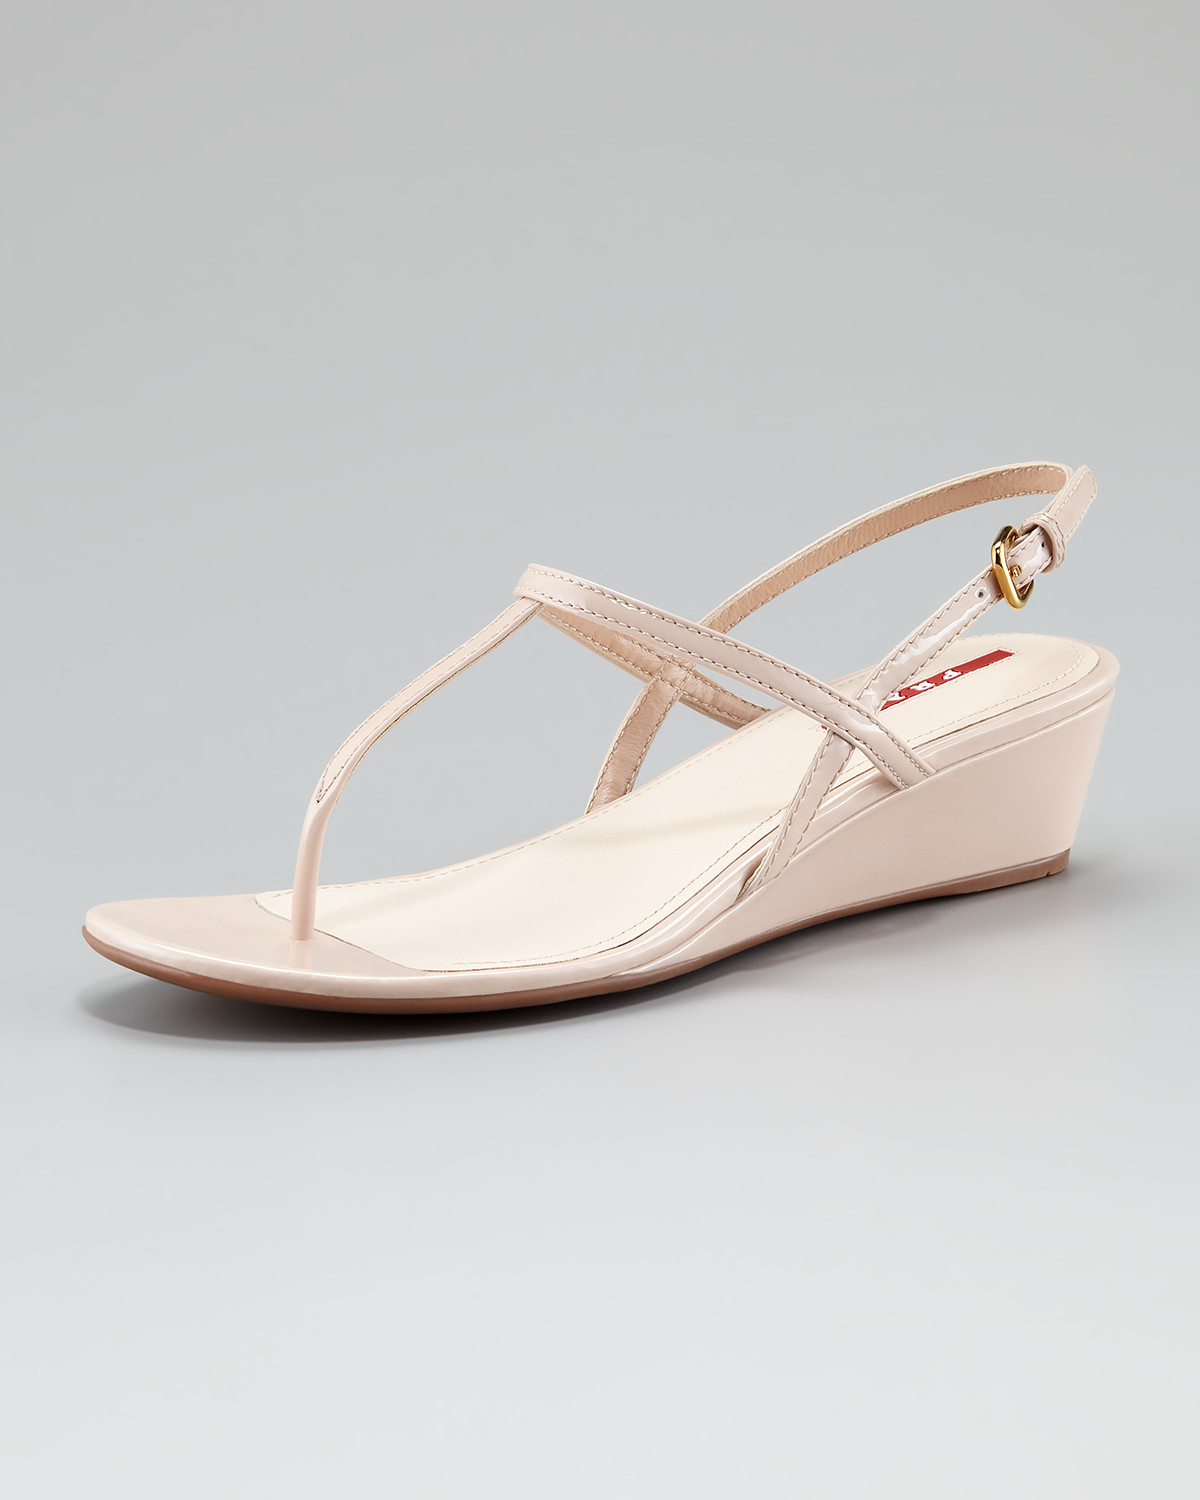 6c7ac5c18a Prada Patent Leather T-strap Wedge Sandal in Natural - Lyst